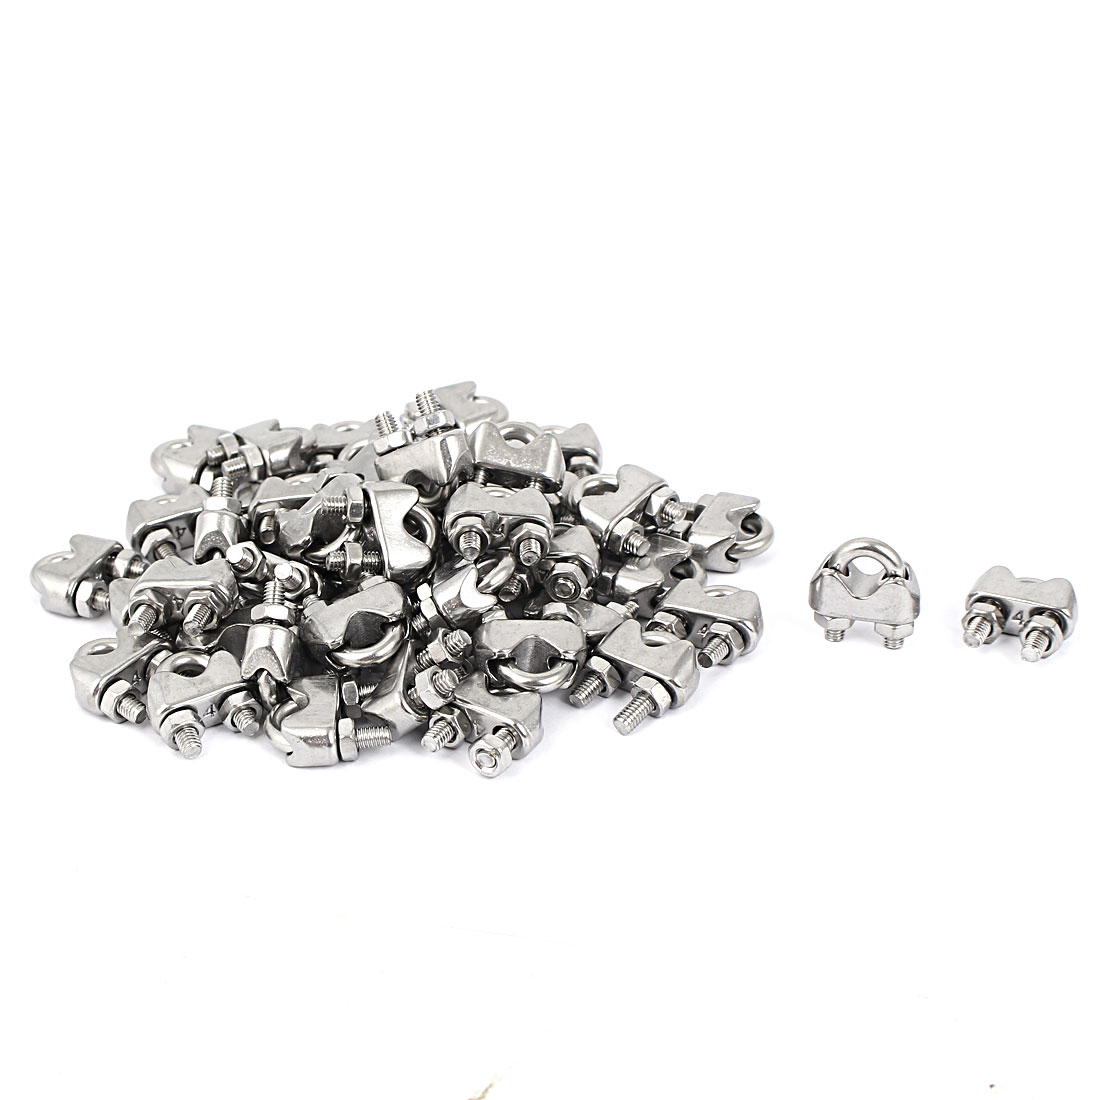 Metal Saddle Clamp Cable Clip Silver Tone 50 Pcs for 4mm Wire Rope